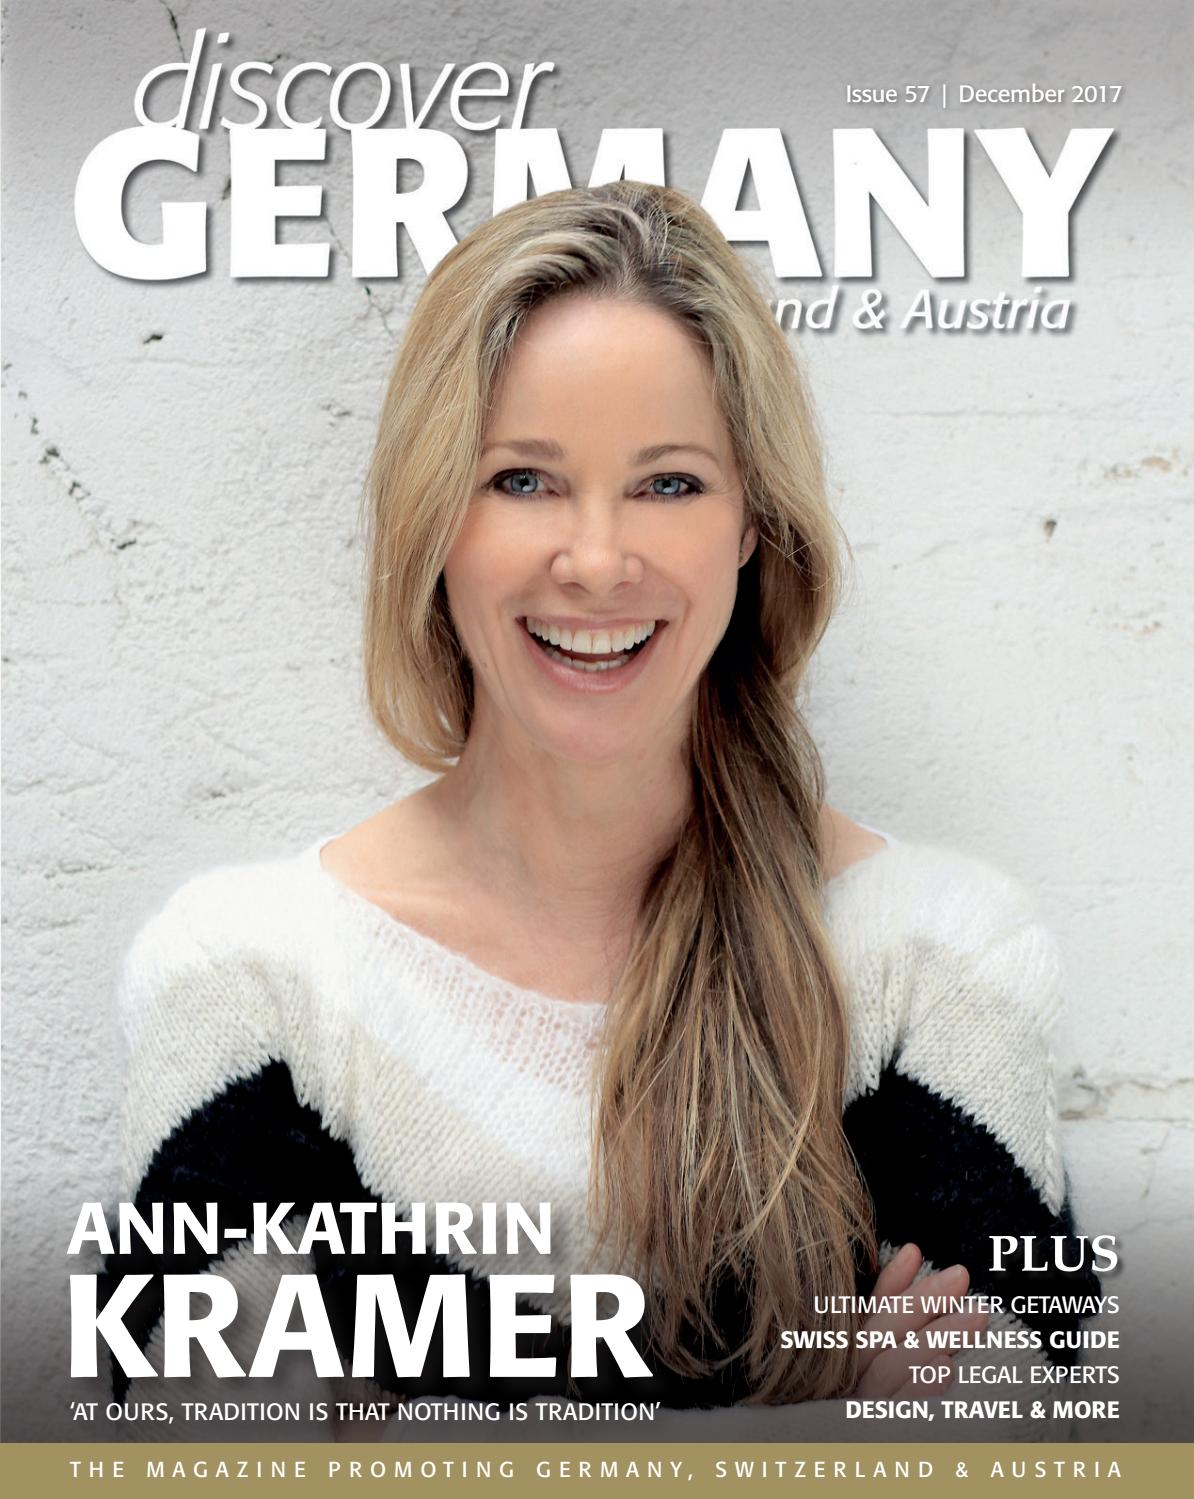 da677c0d06fe Discover Germany, Issue 57, December 2017 by Scan Group - issuu